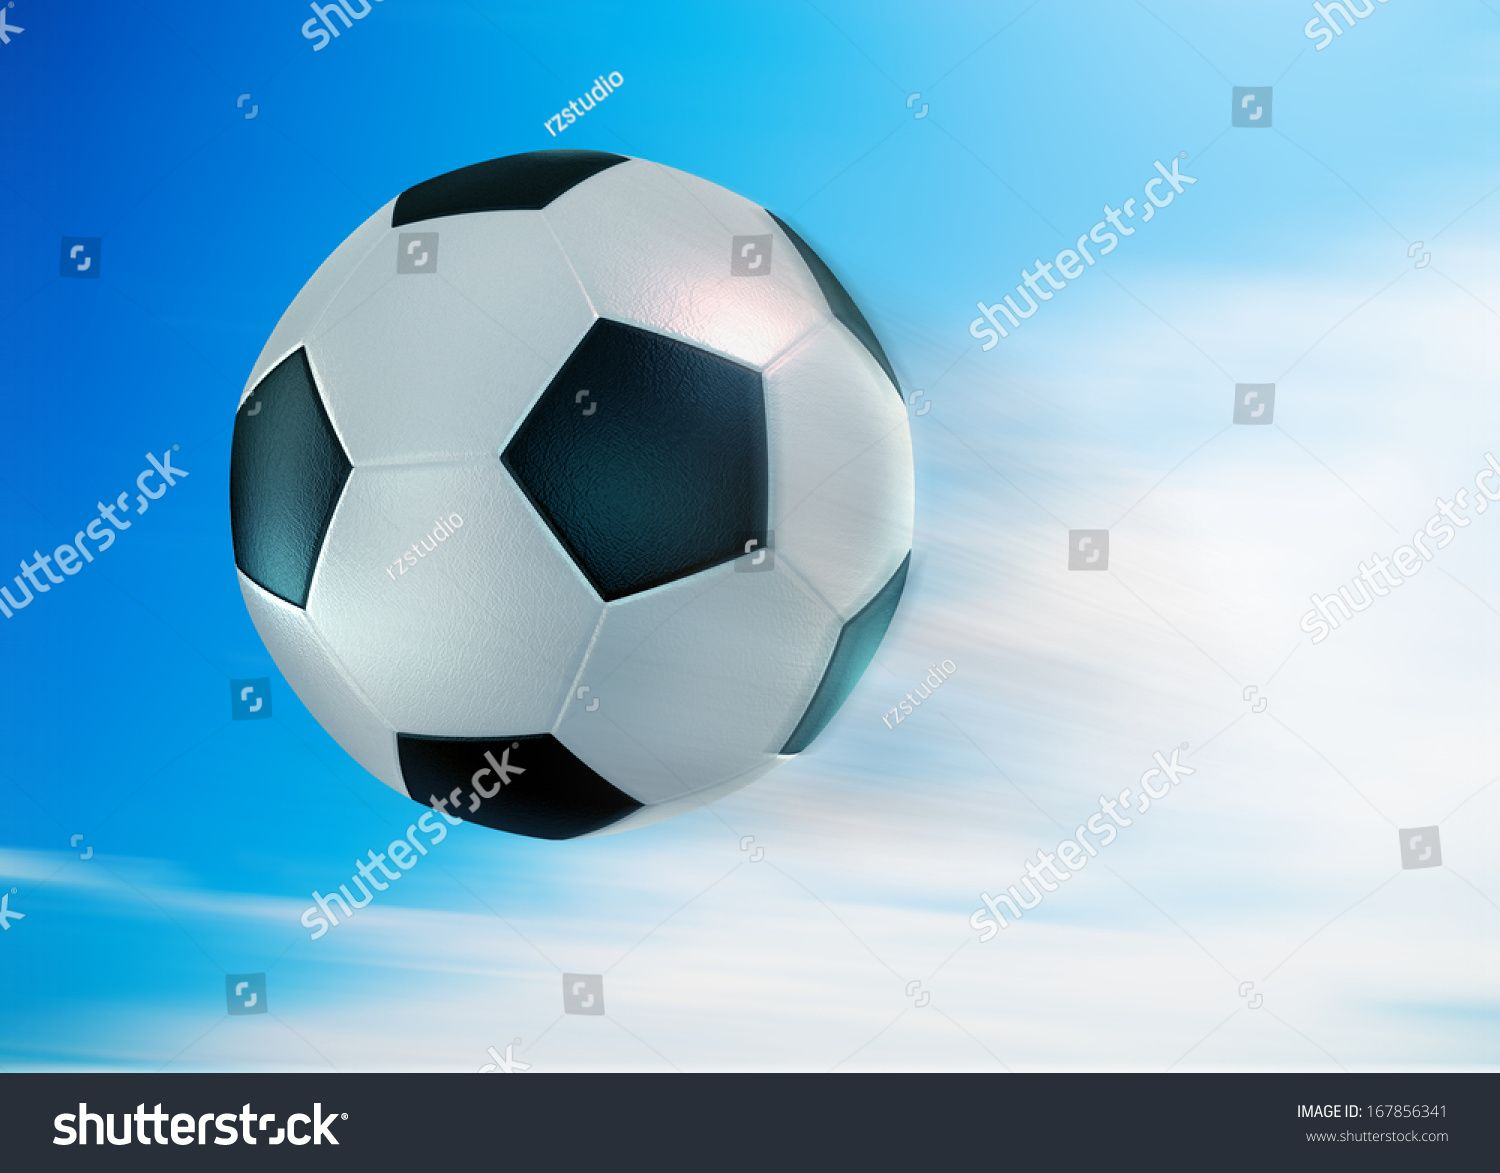 Download Soccer Football With Blue Sky Field Ad Ad Football Soccer Blue Field Football Score Football Cartoon Styles